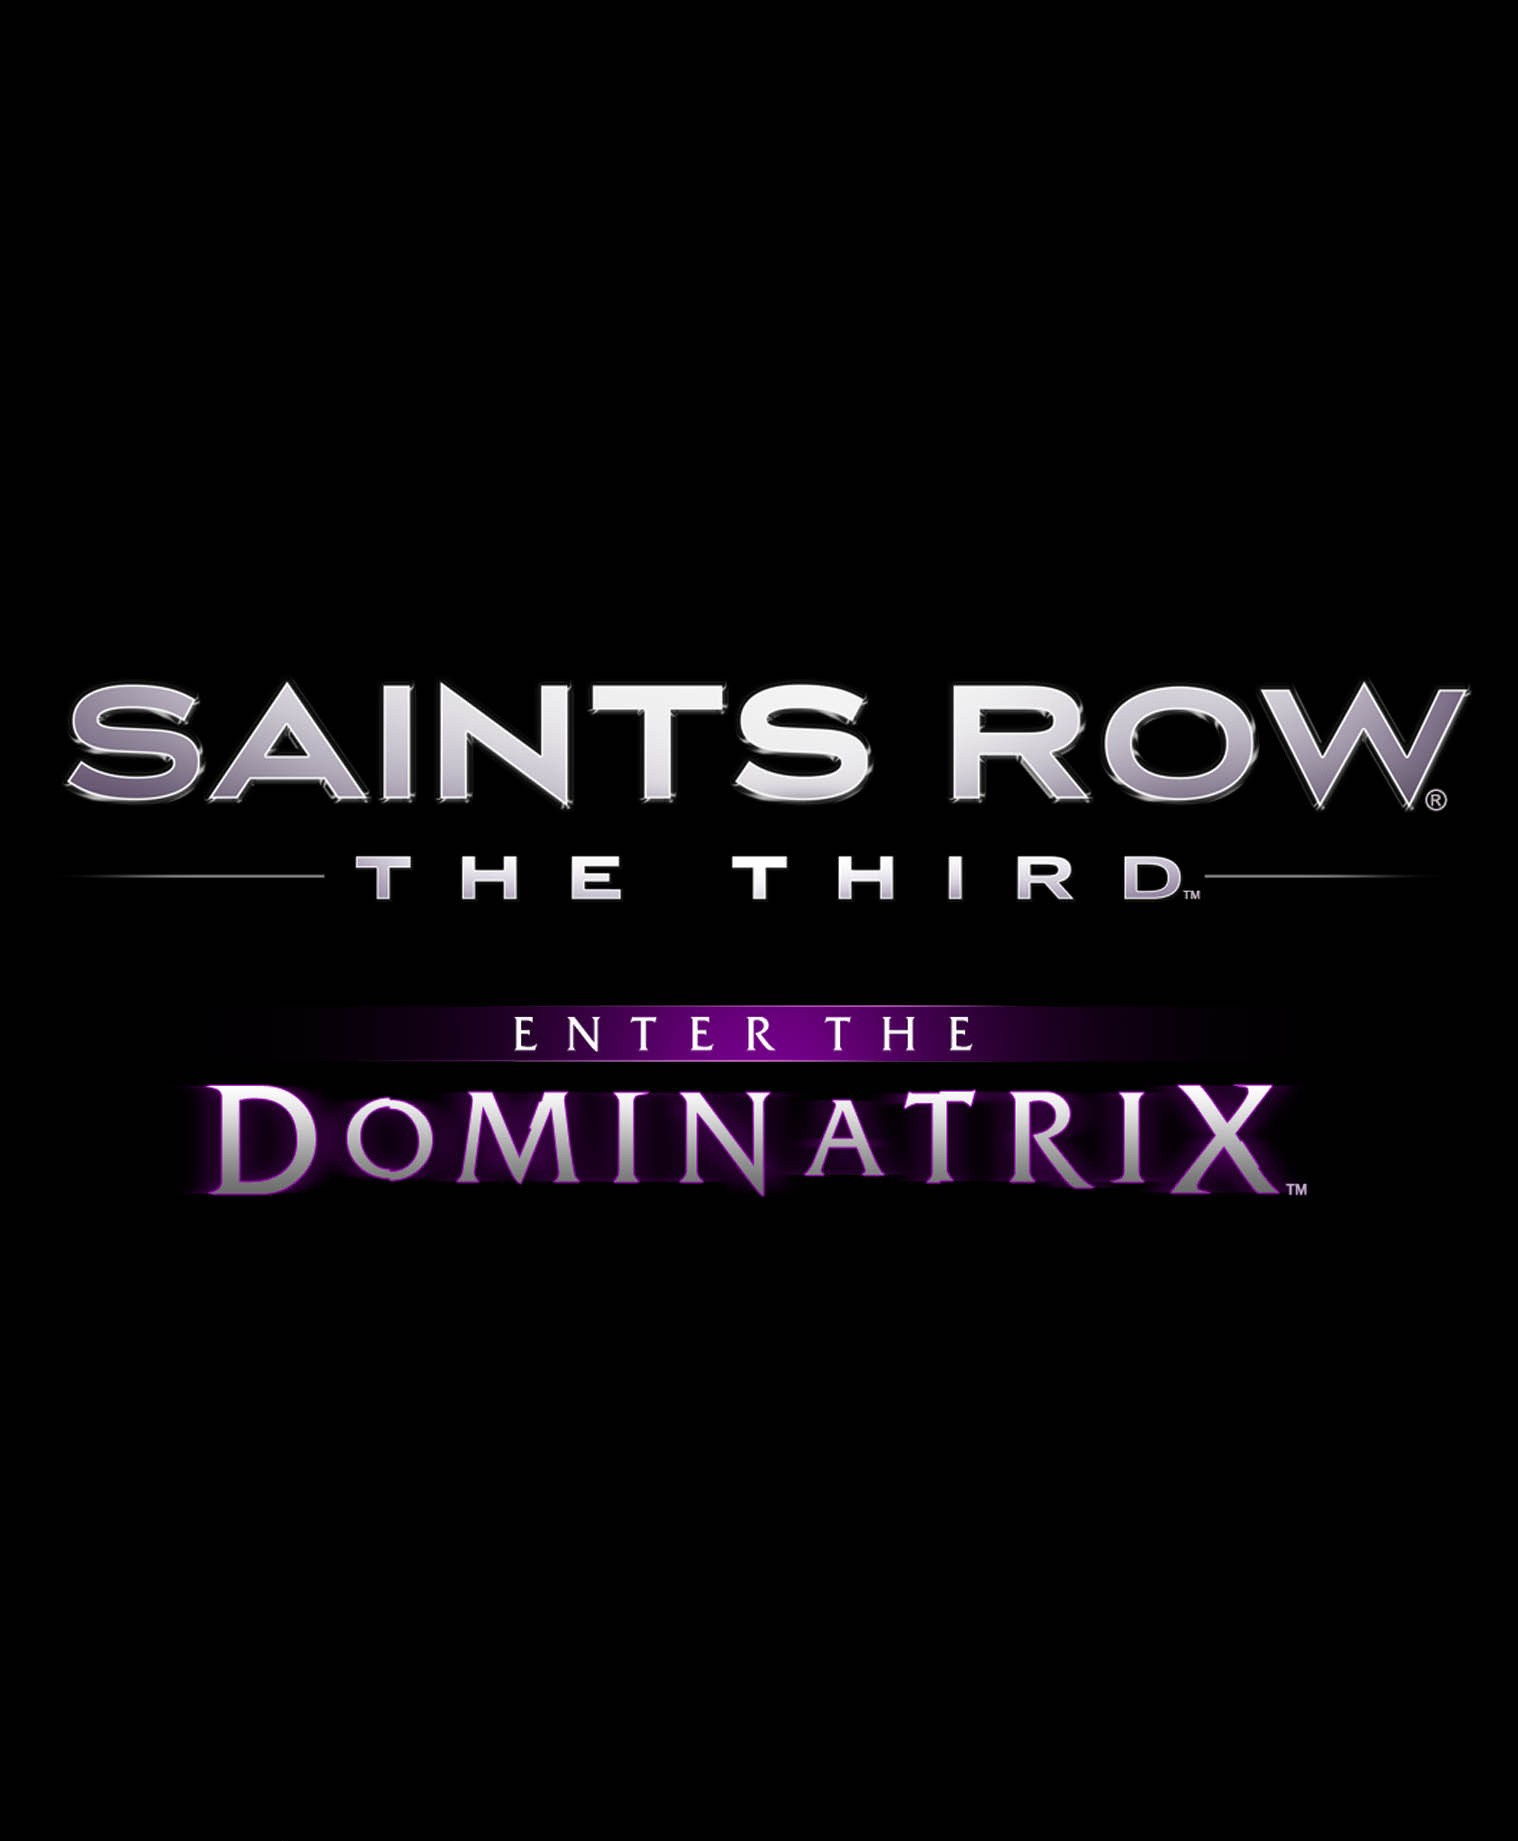 SaintsRow_Dominatrix